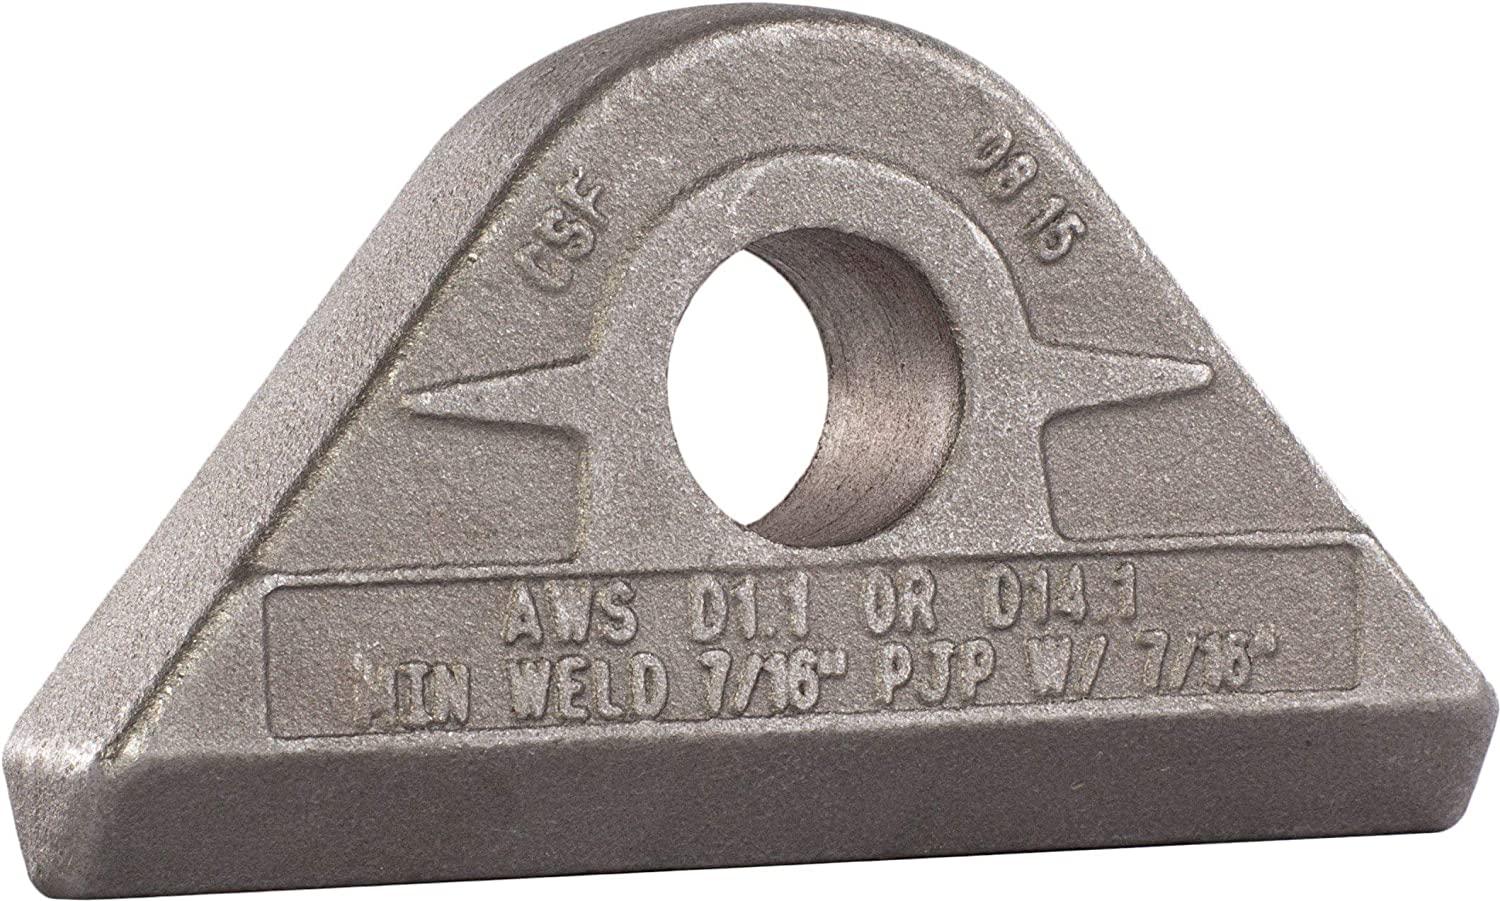 MAG-Mate PE0650 Weld-On Pad Eye, 6-1/2 Tons Working Load Limit, 13000 lb, Grey (Renewed)